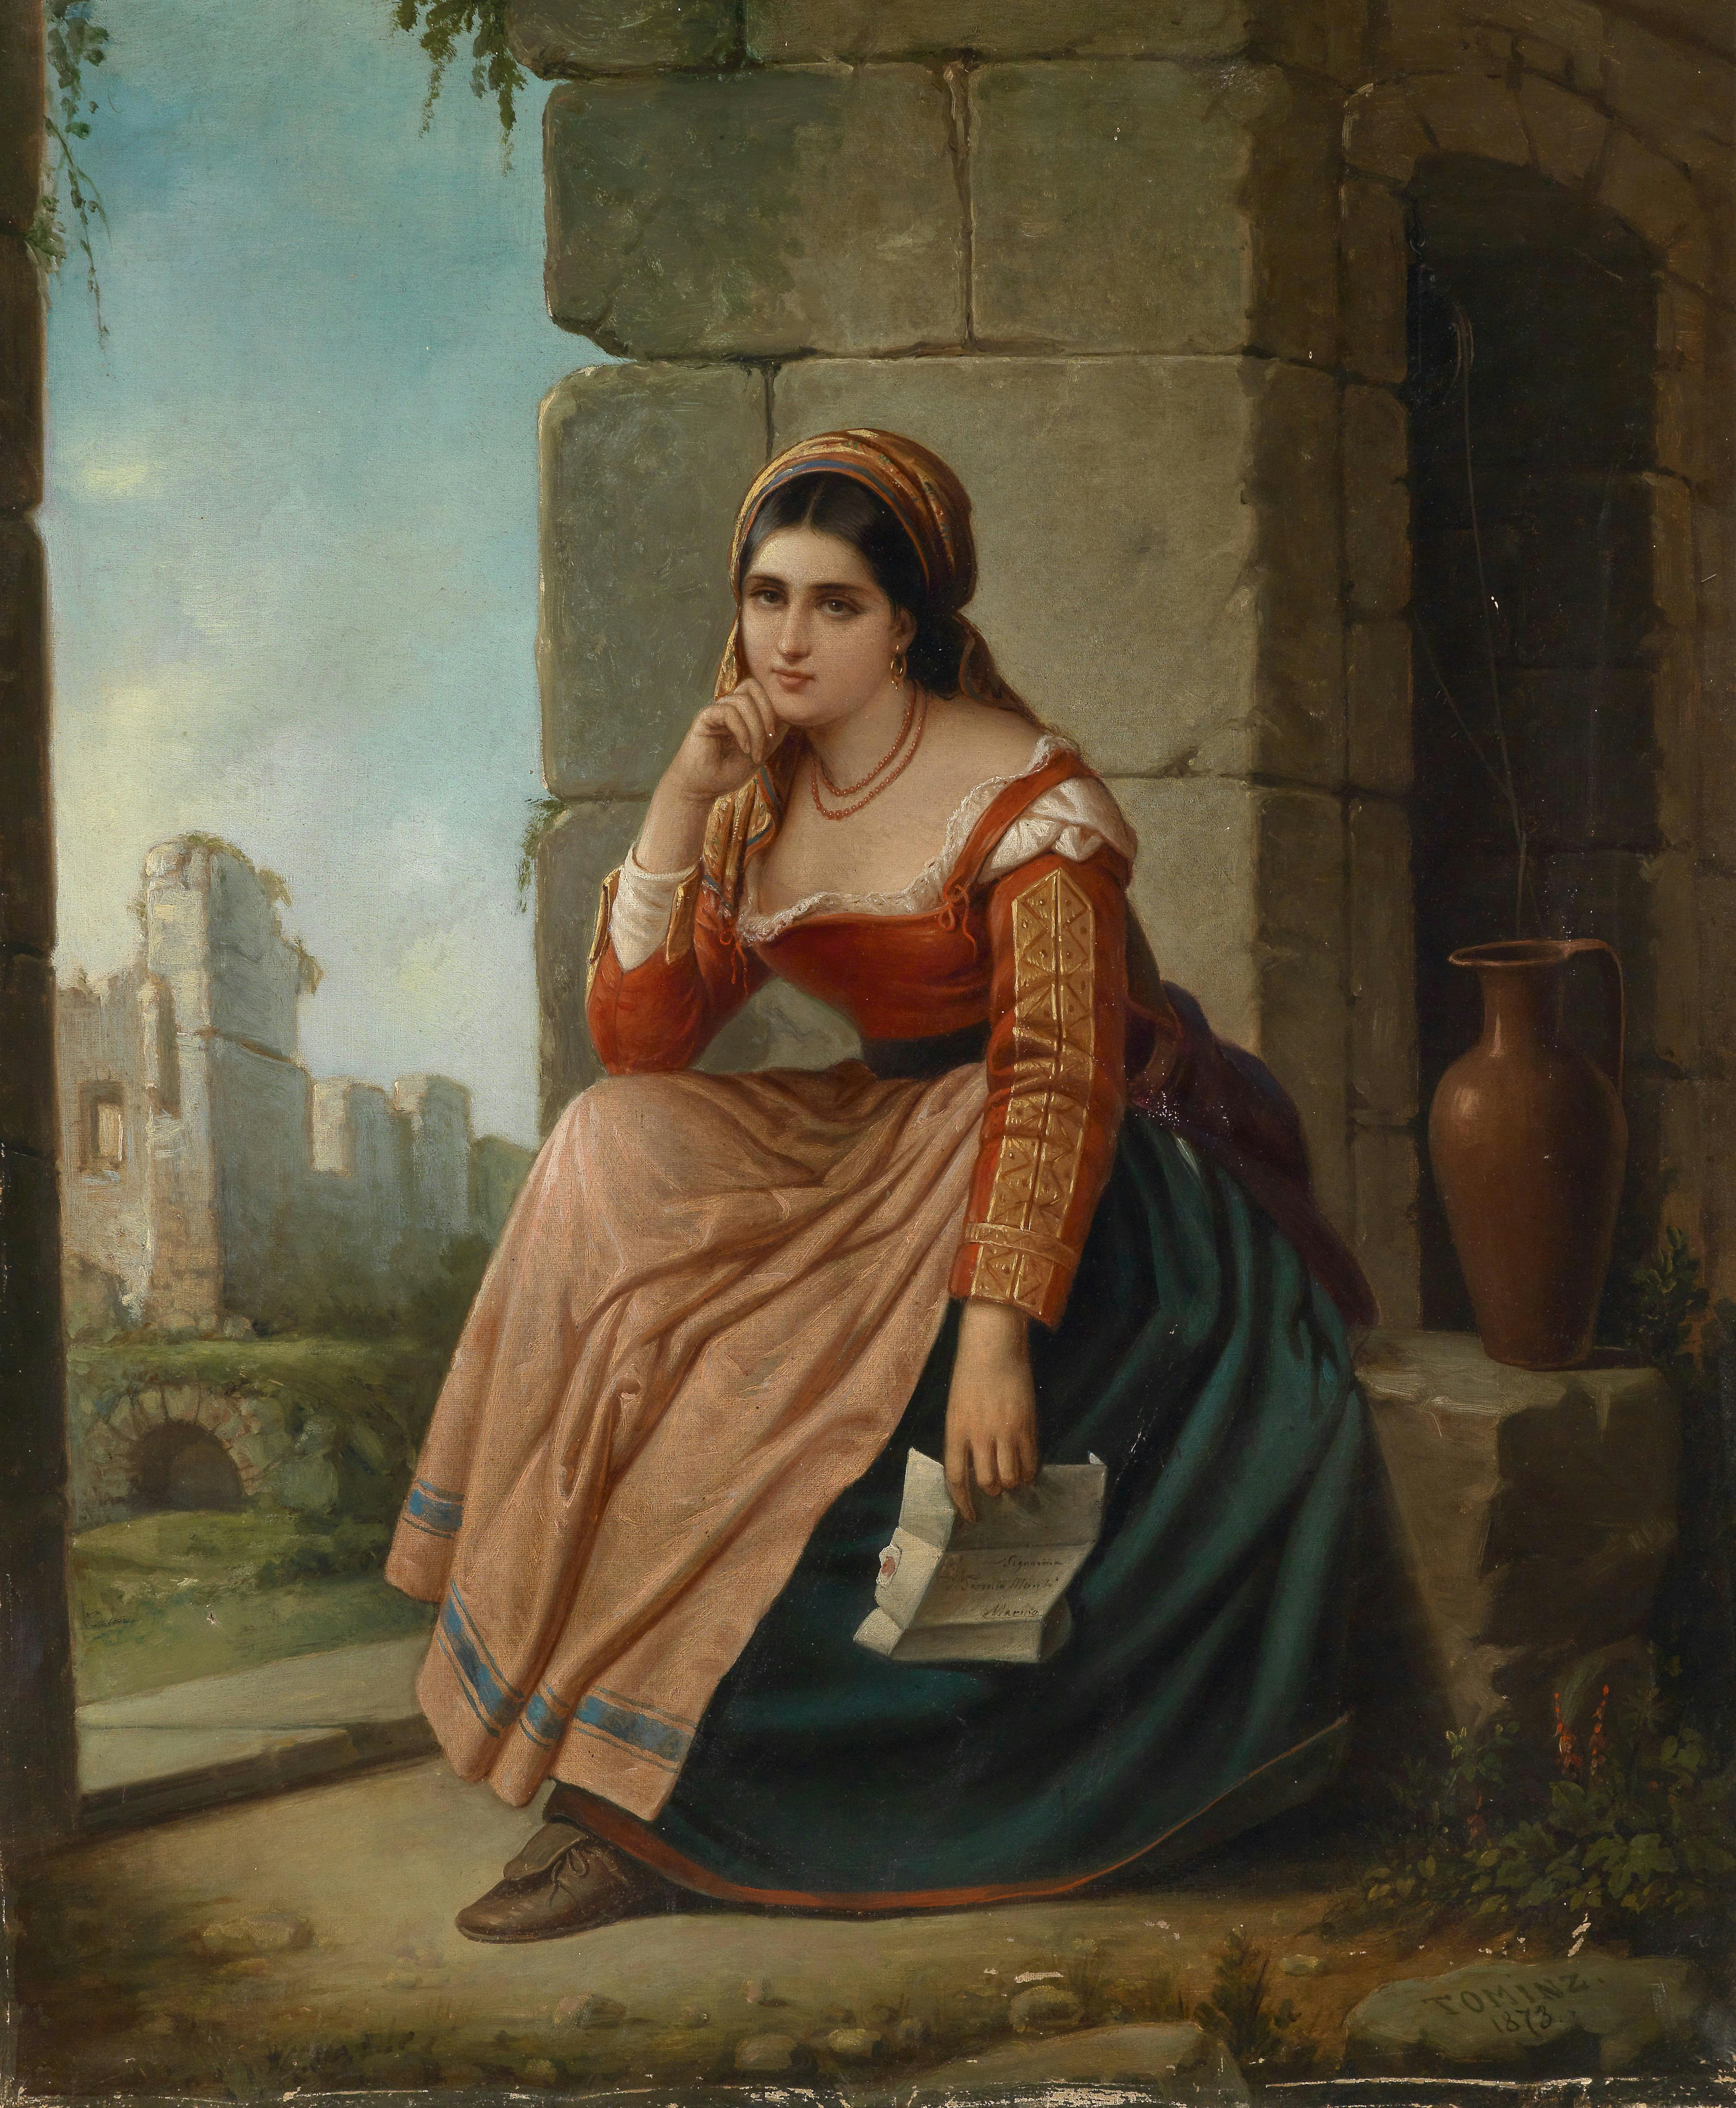 The Letter, oil on canvas painting attributed to Augusto Tominz (1818–1883) - date and signature at bottom right: TOMINZ 1873.